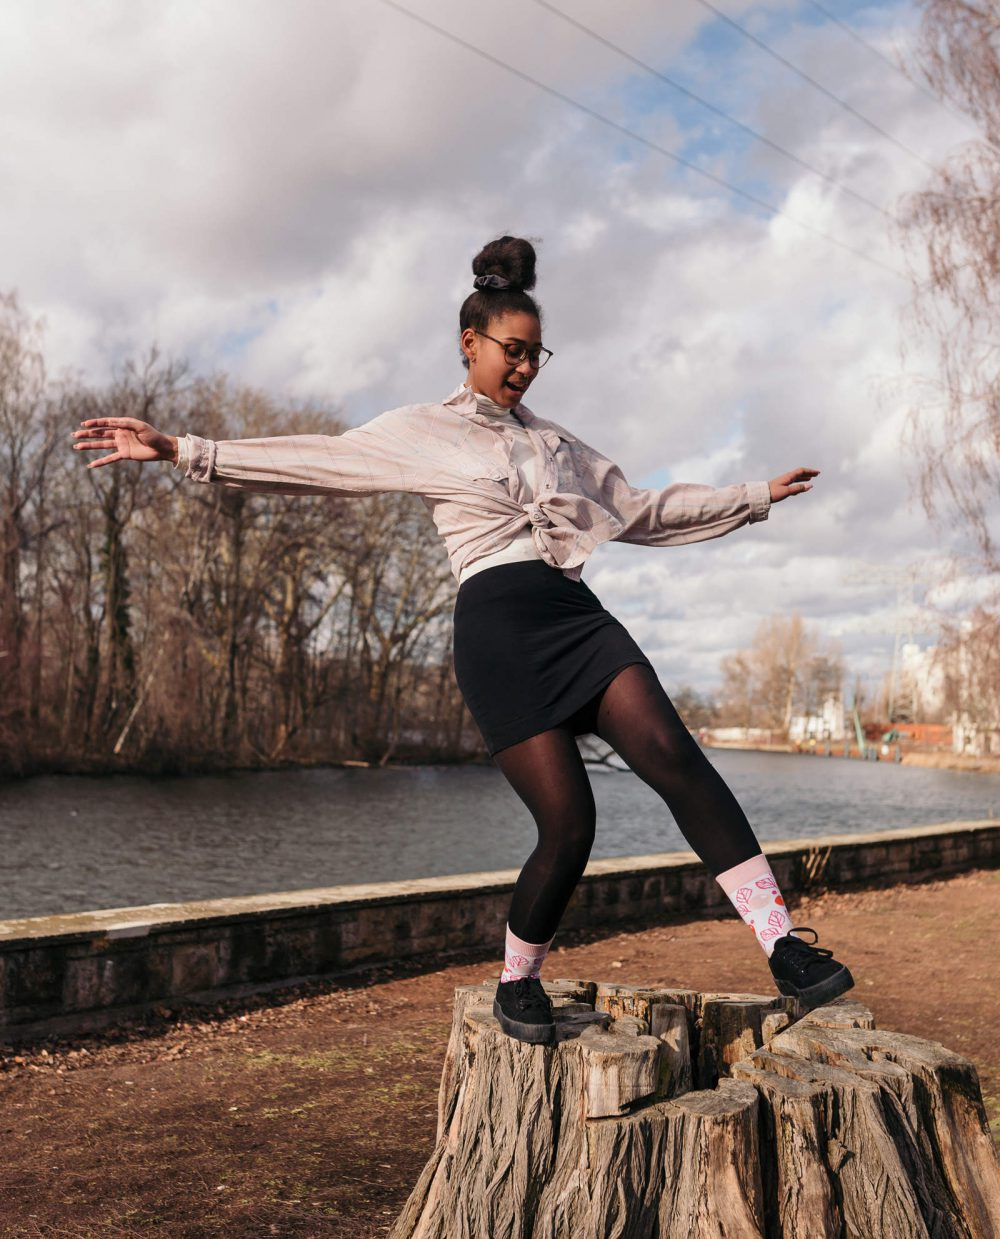 floral socks for women inspired by clelia duel mosher